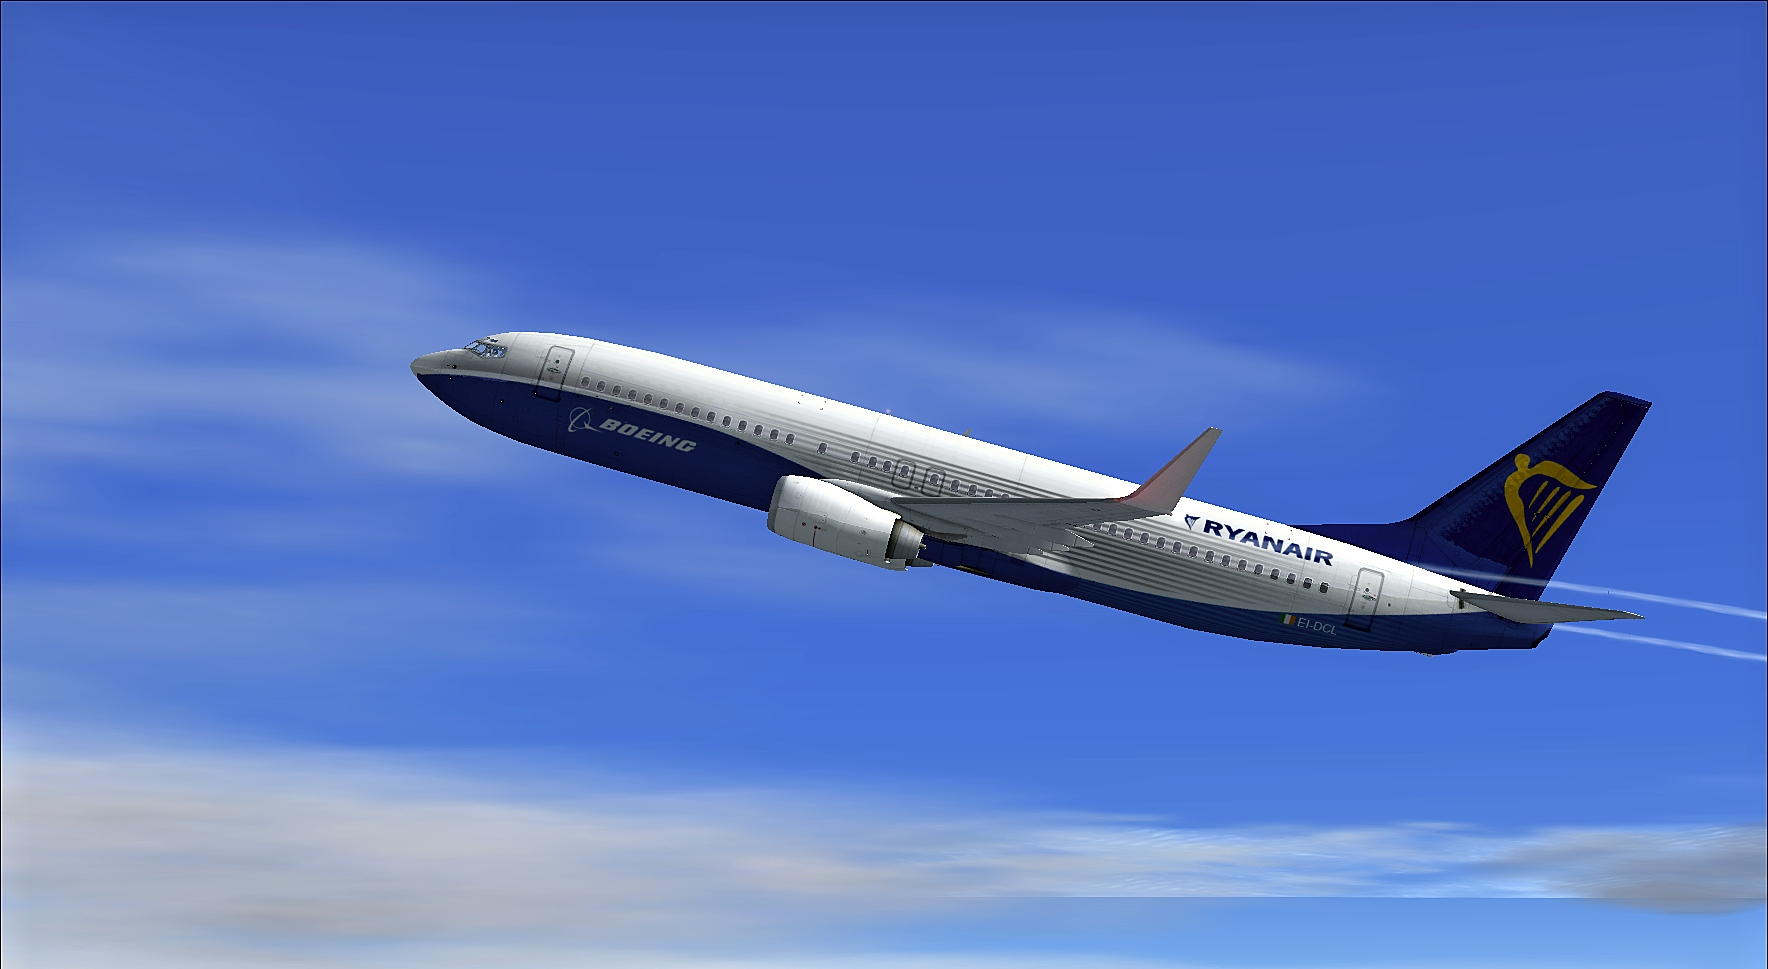 PERFECT FLIGHT - FSX MISSIONS RYANAIR